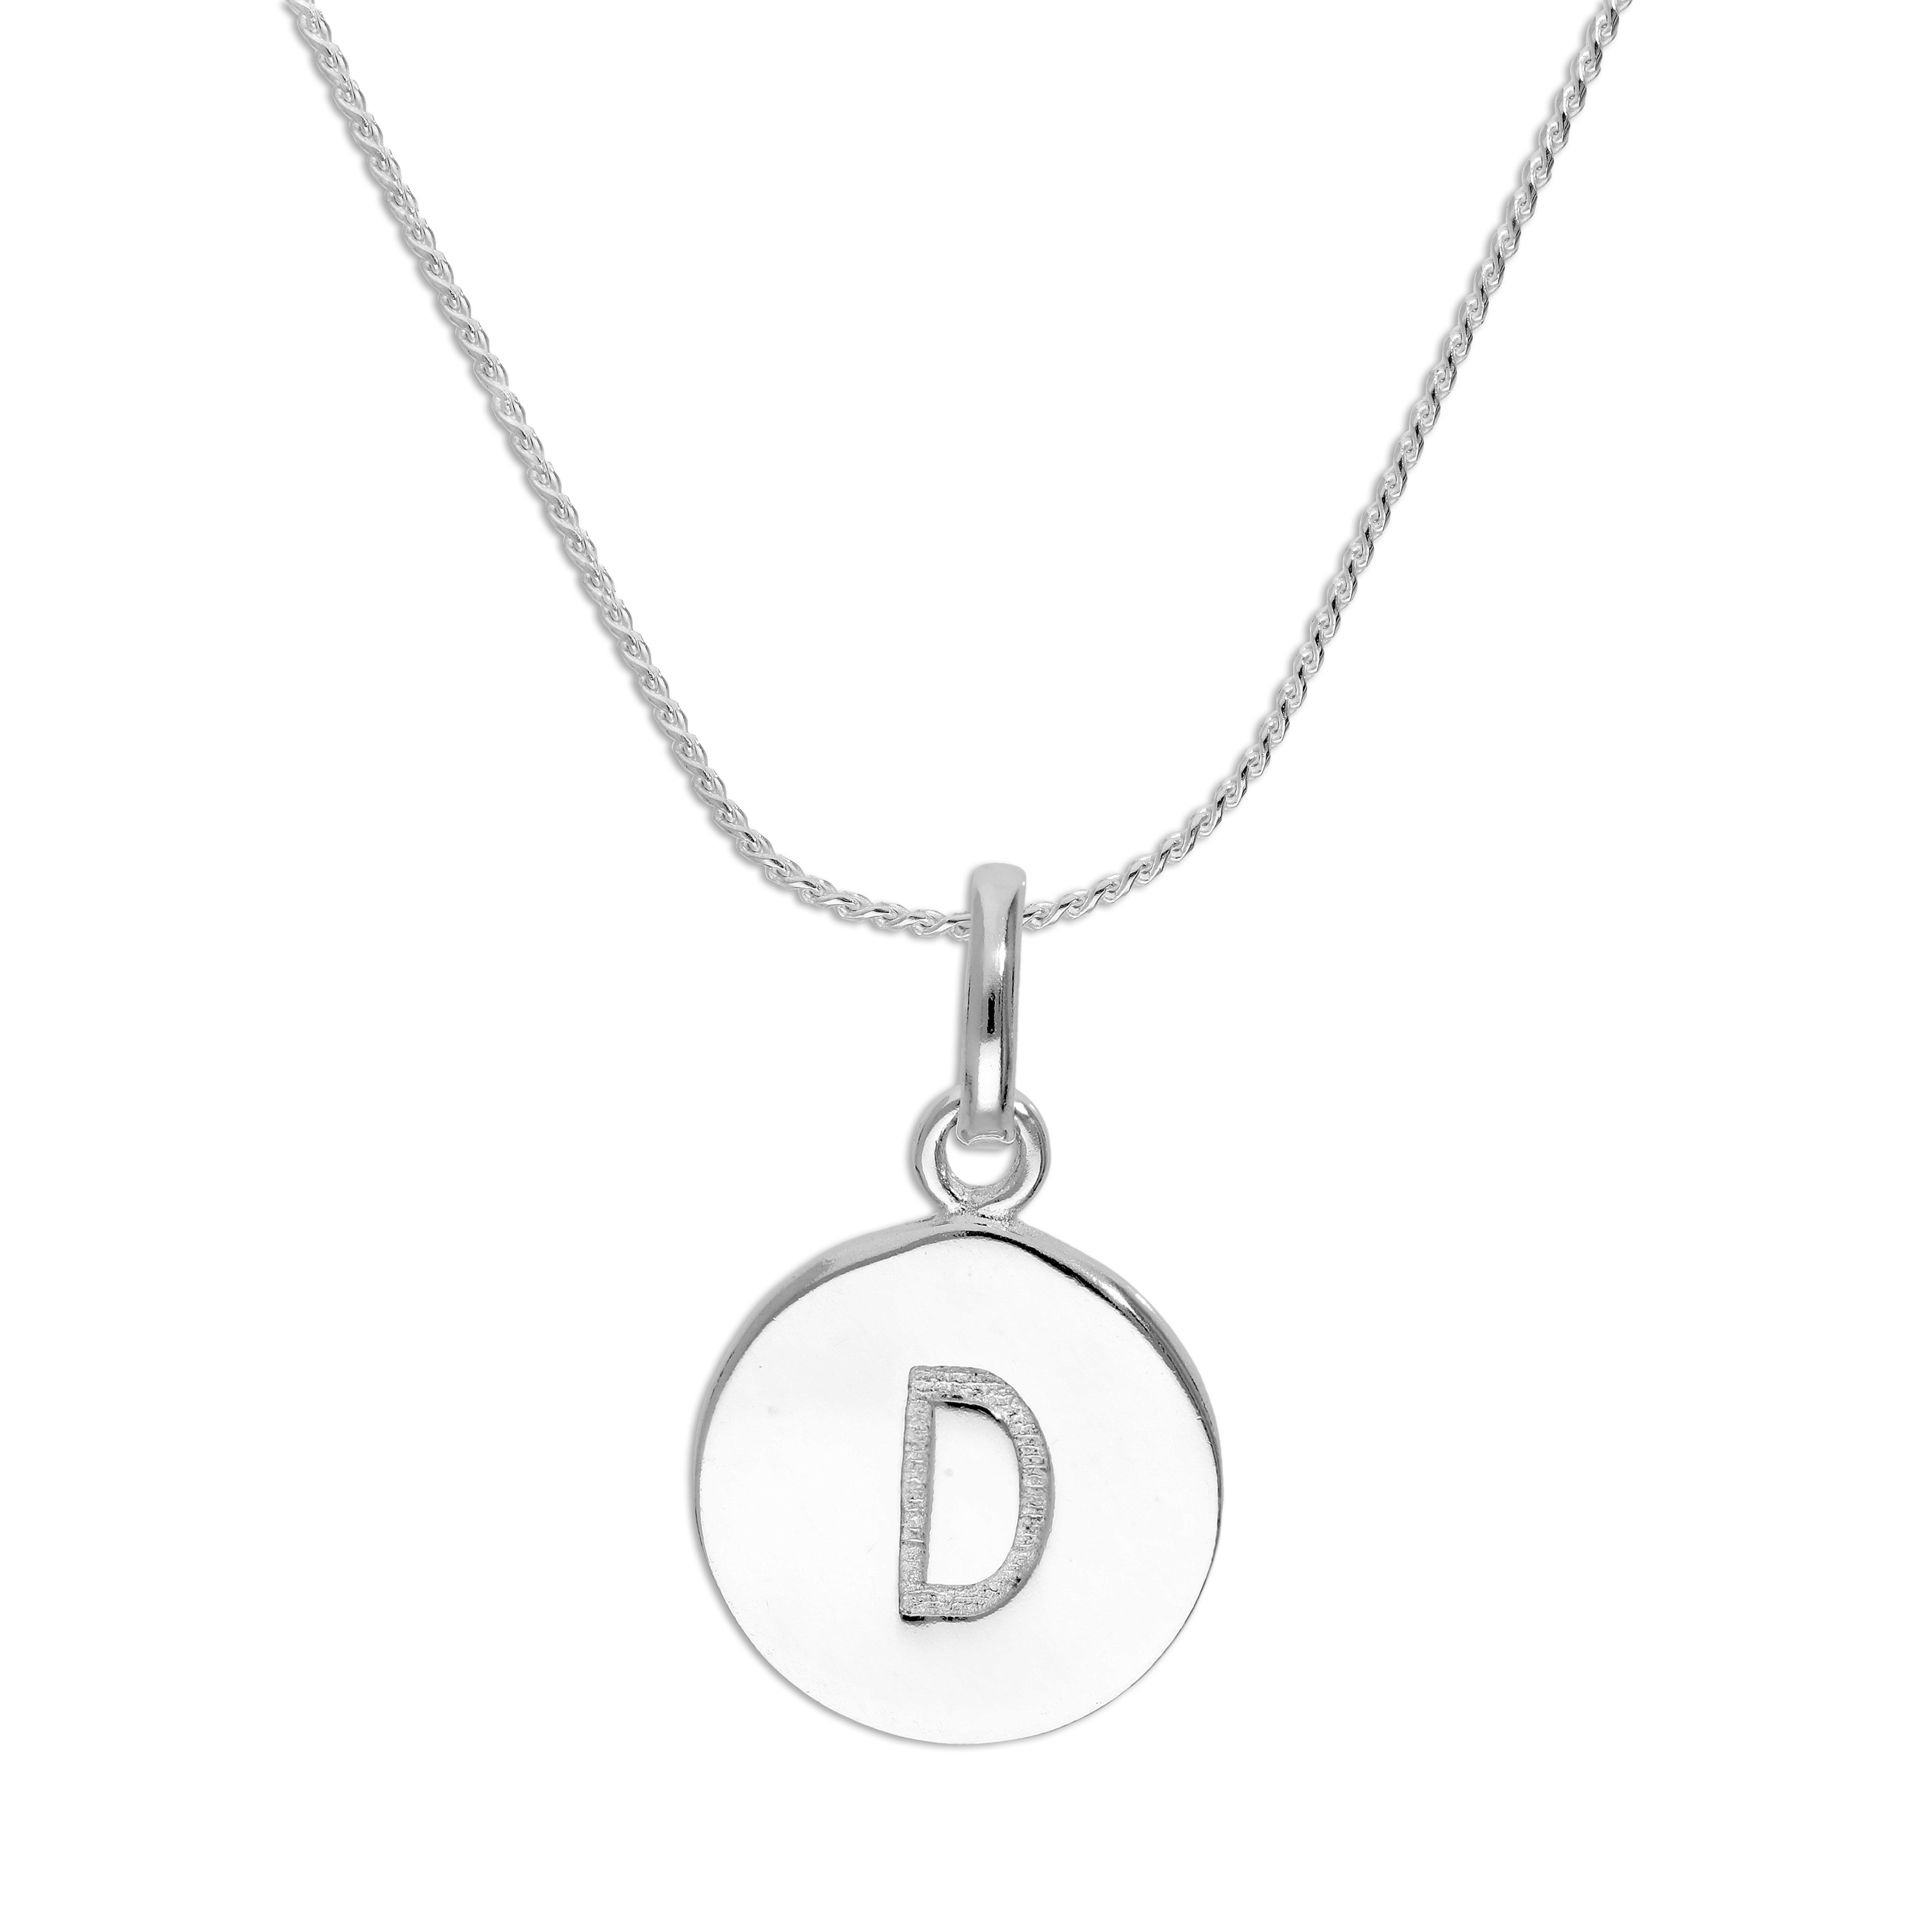 An image of Sterling Silver Initial Letter D Necklace 20 Inches Blue